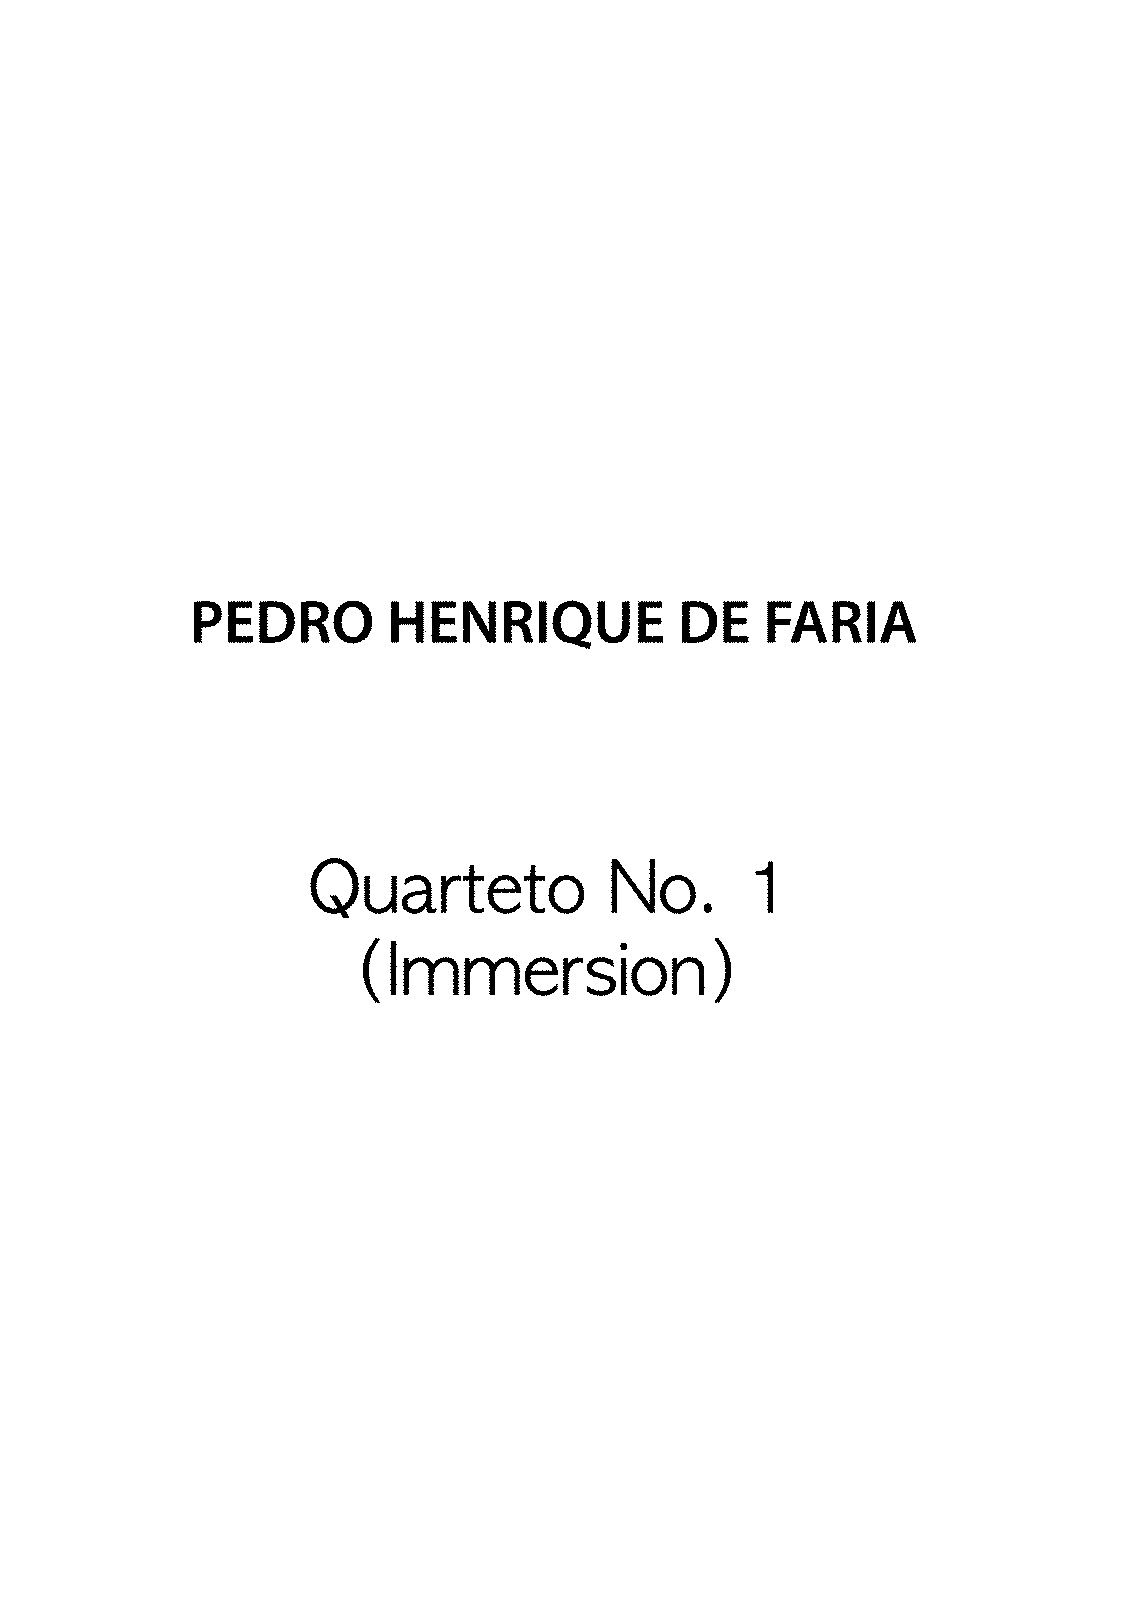 PMLP508066-Quarteto No. 1.pdf